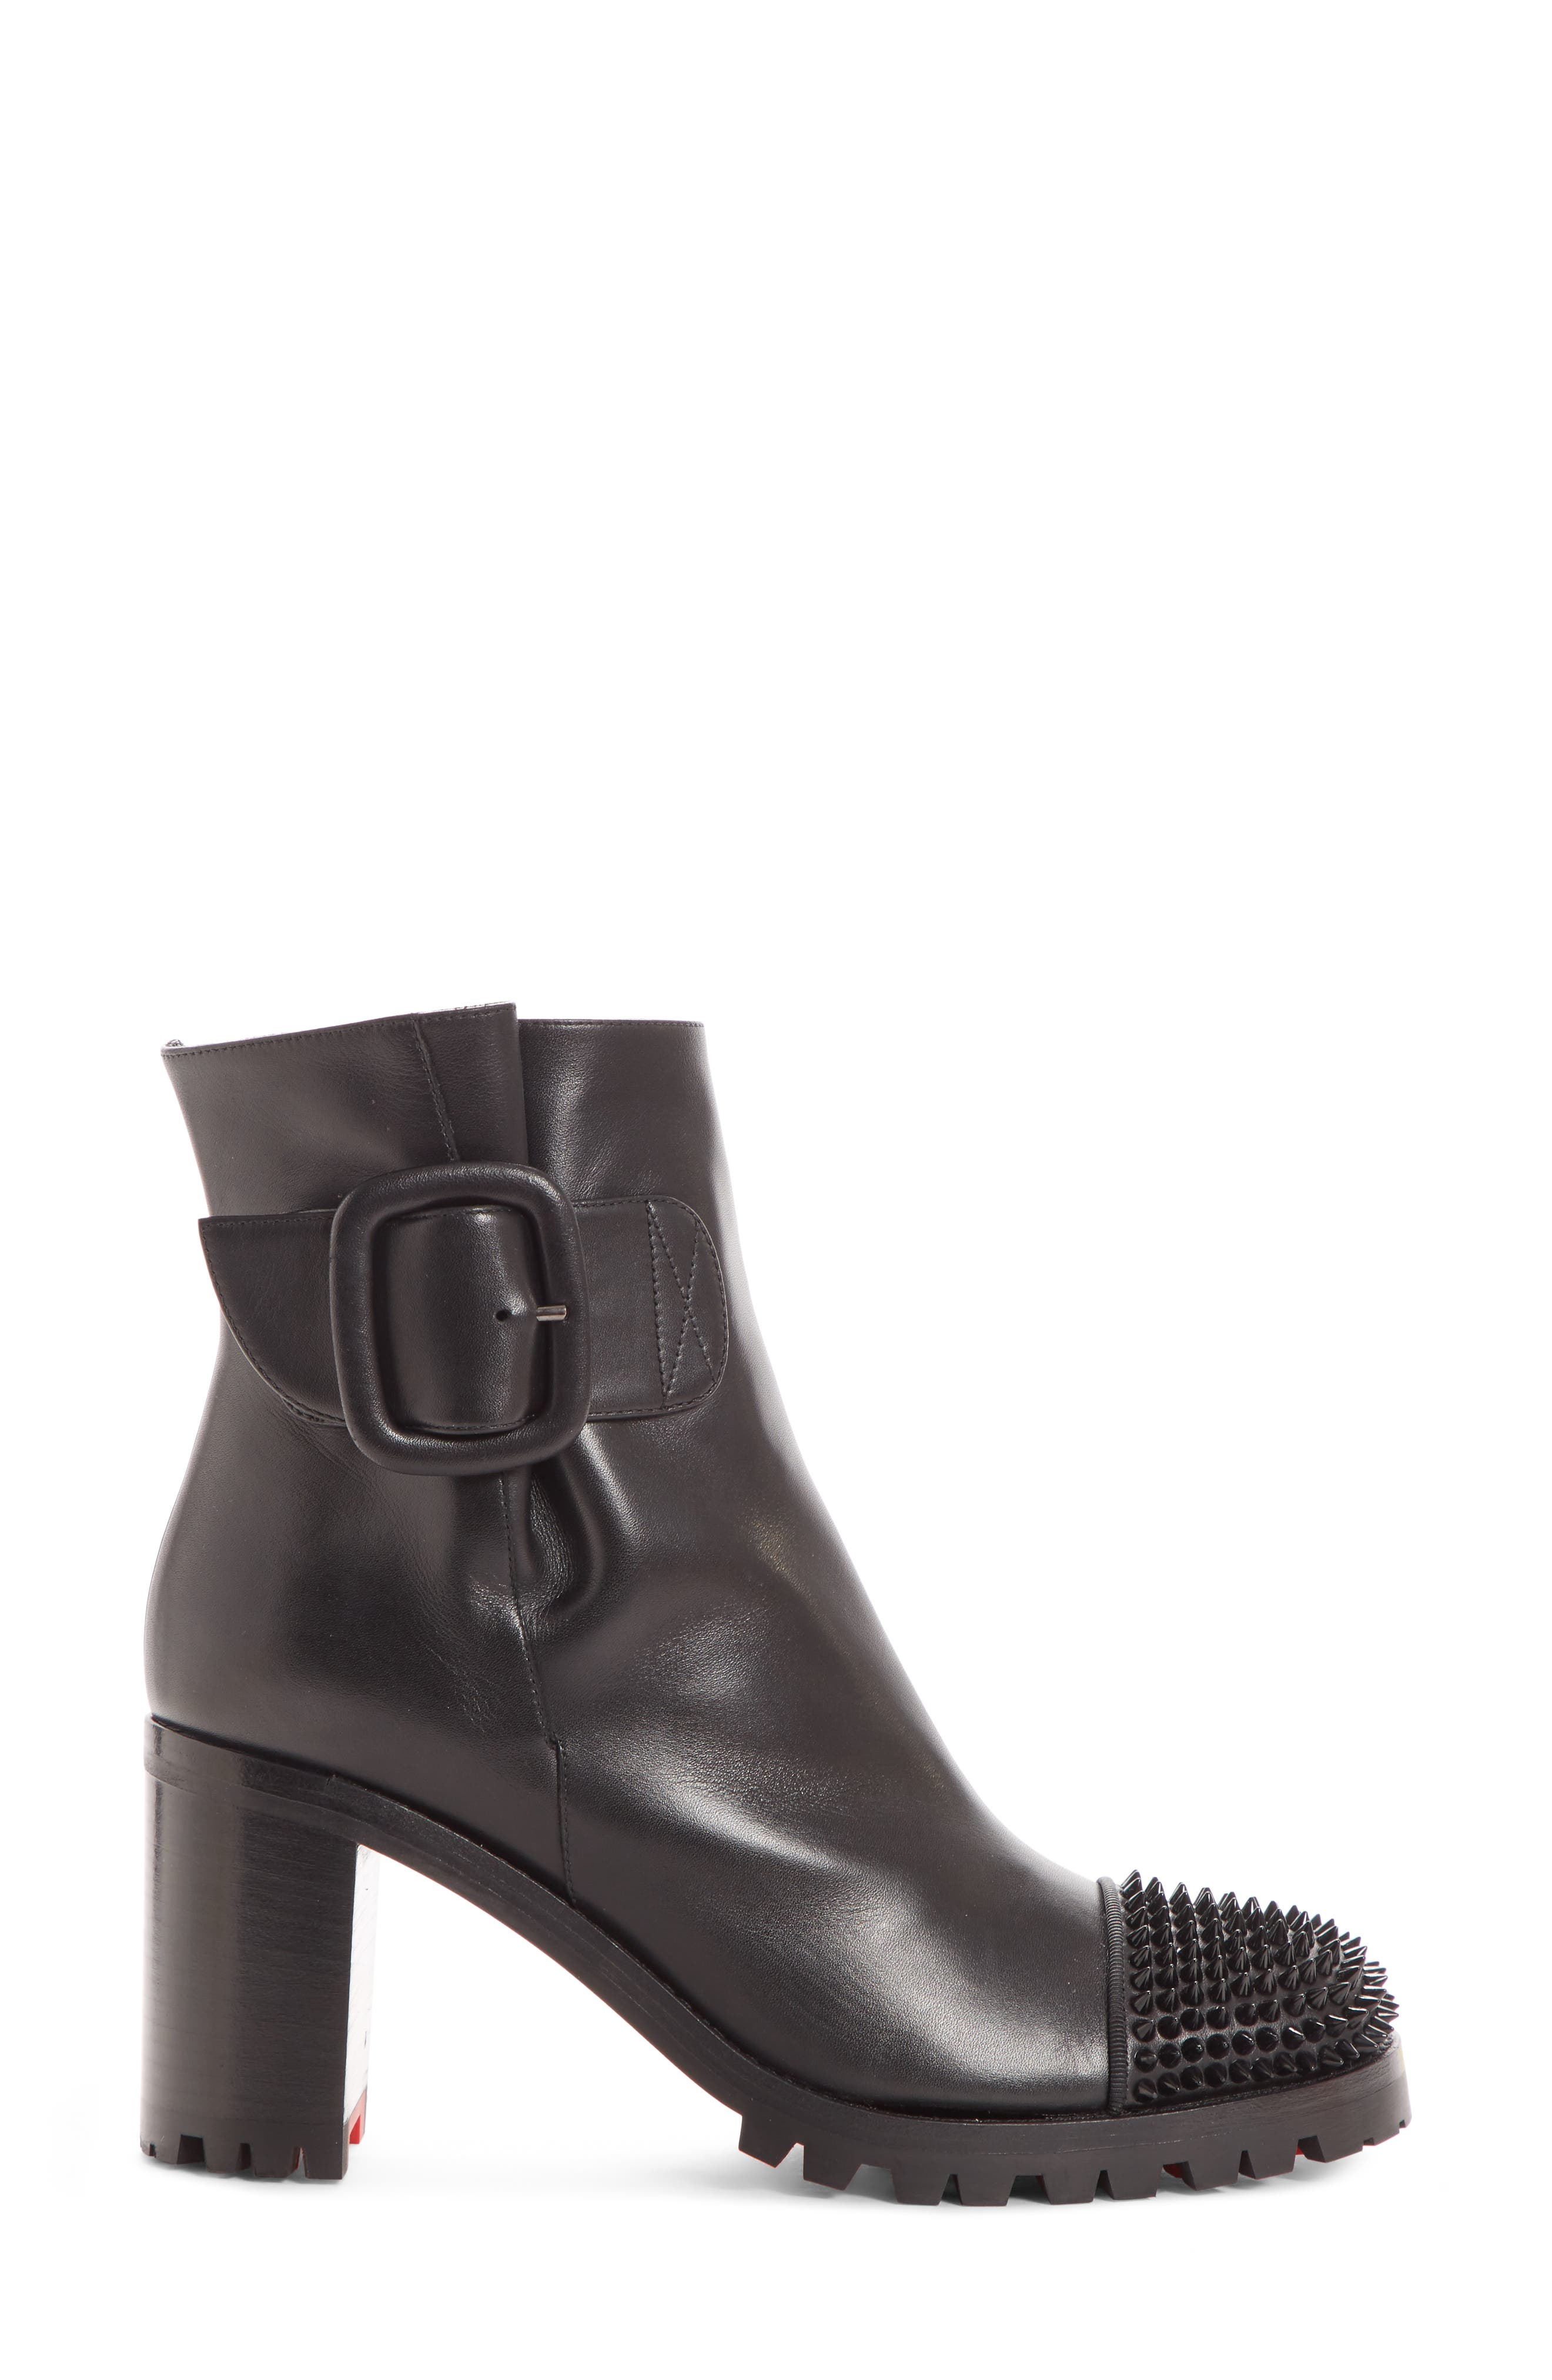 CHRISTIAN LOUBOUTIN,                             Olivia Spiked Boot,                             Alternate thumbnail 3, color,                             001